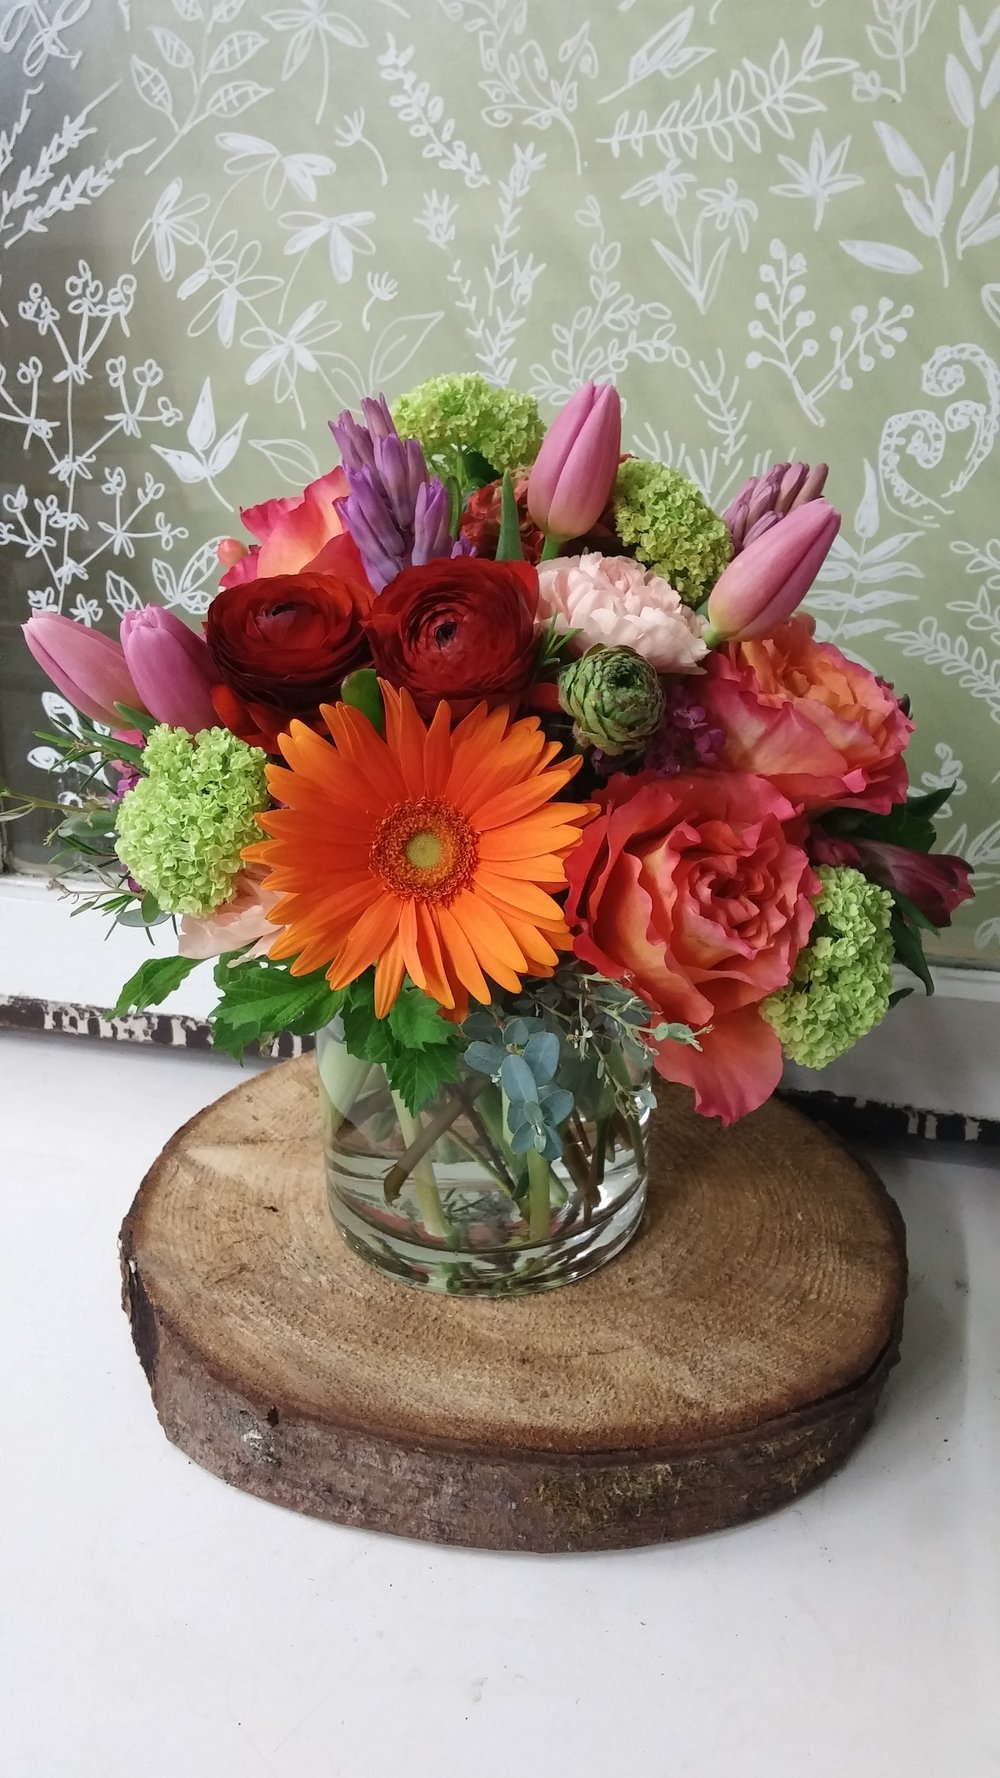 5. Summer bouquet mix in orange, rust and green